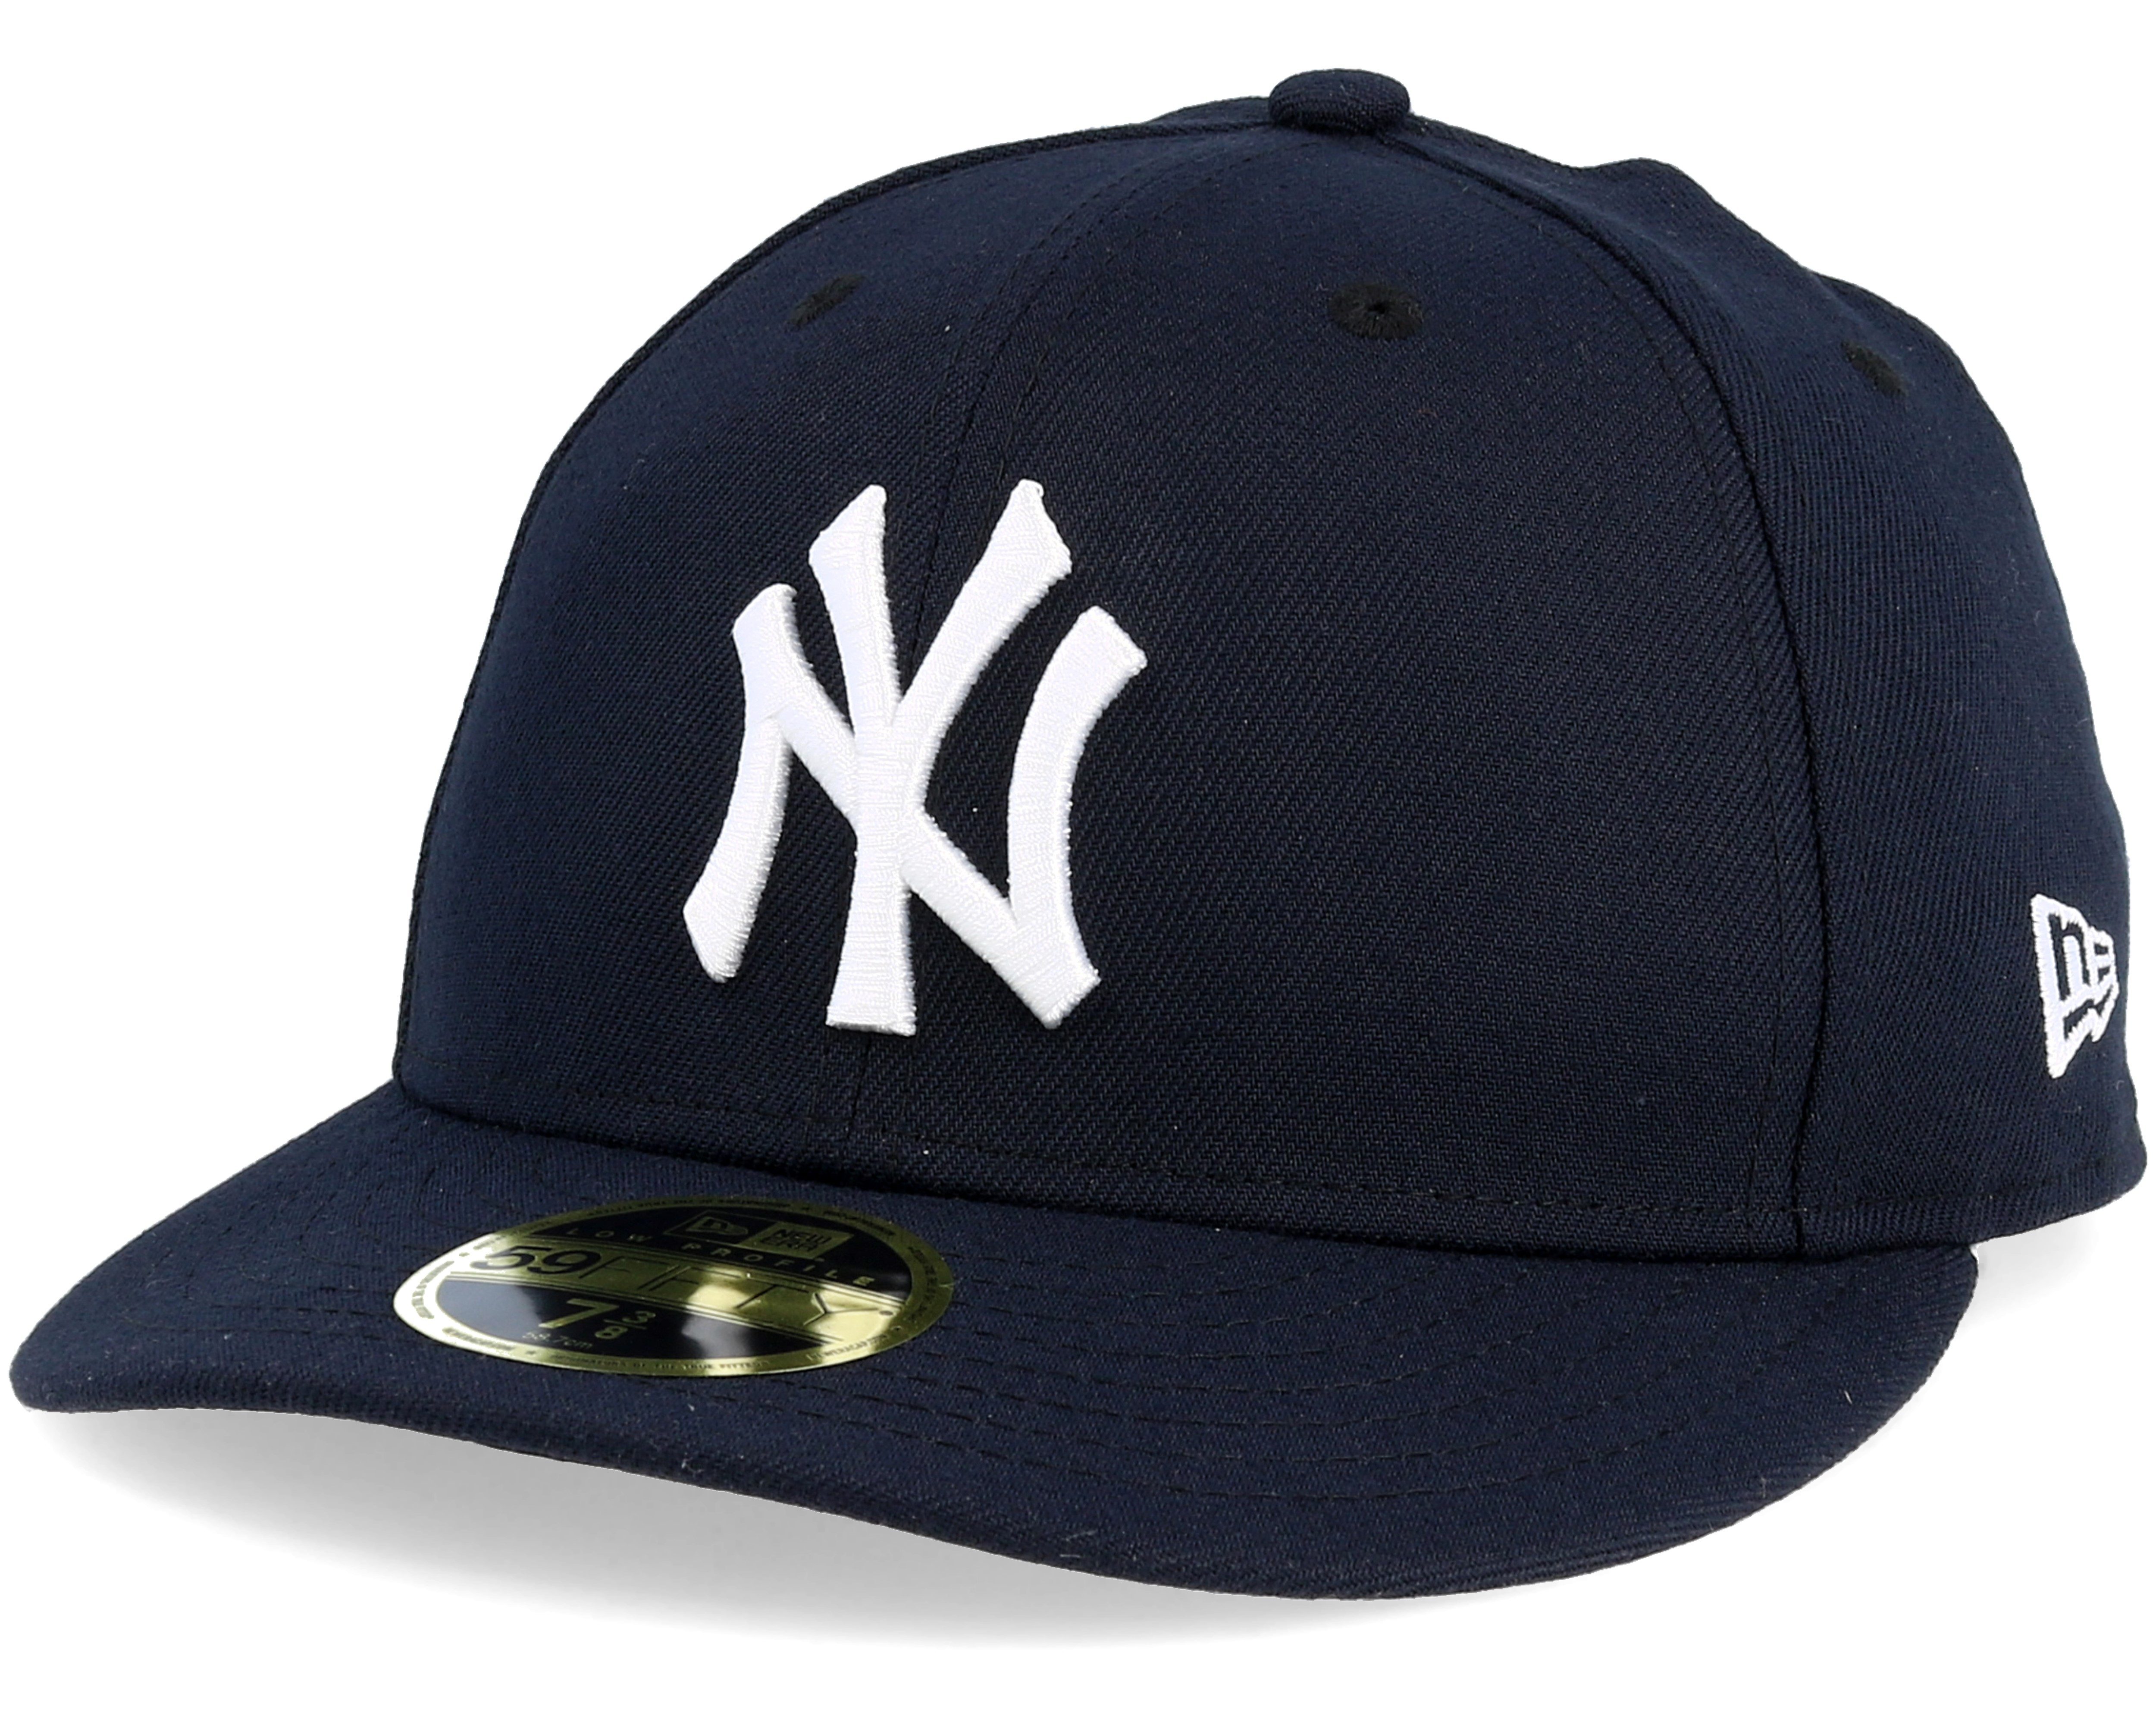 2cd40dcf5c3eb0 Product information New York Yankees Game Authentic Collection Low Profile  59fifty - New Era